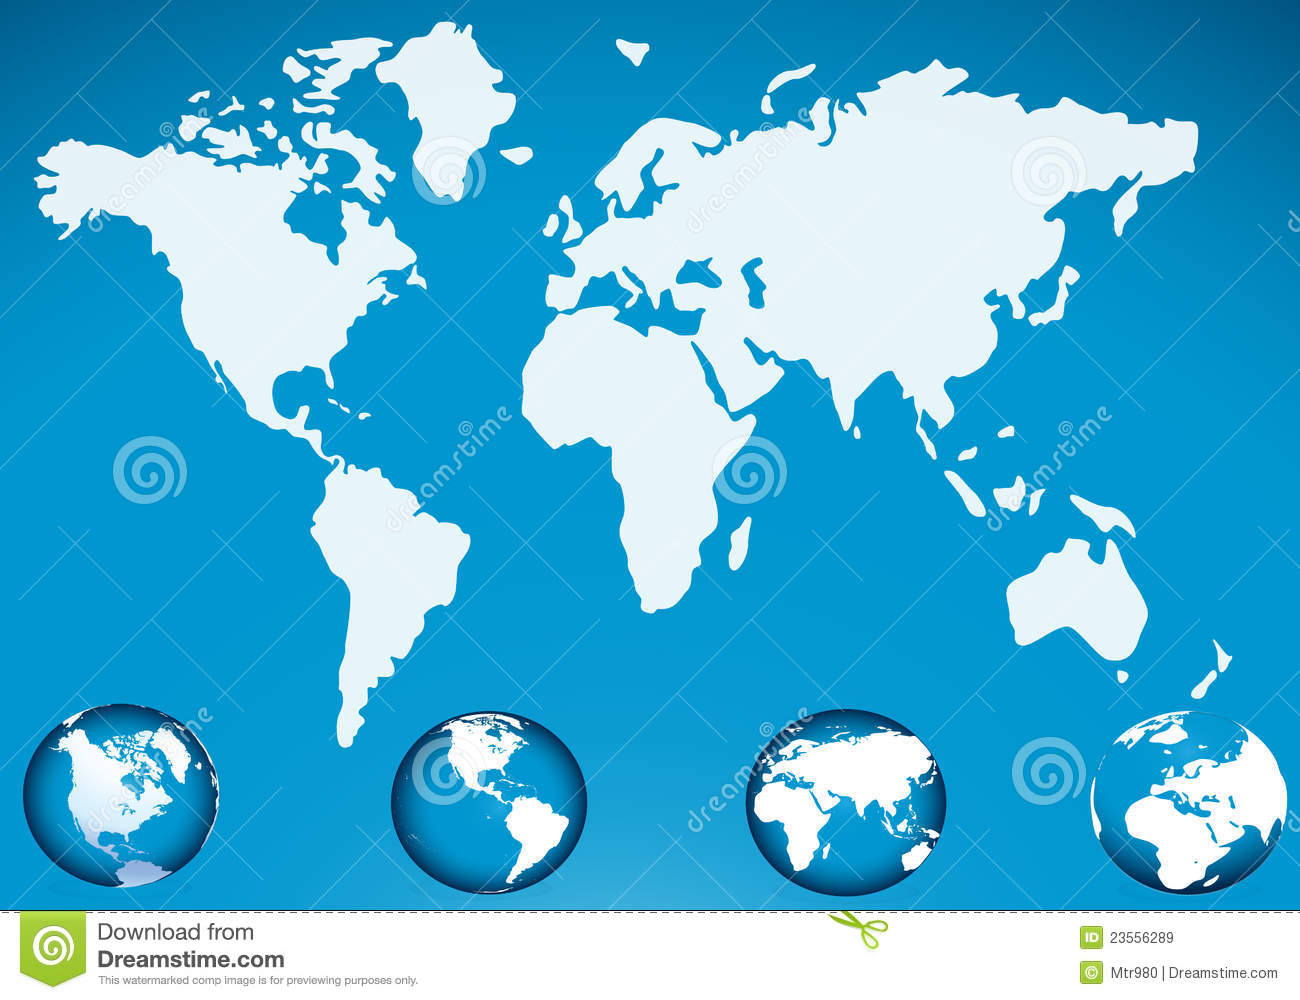 World map with globe icon stock vector illustration of water 23556289 world map with globe icon gumiabroncs Gallery